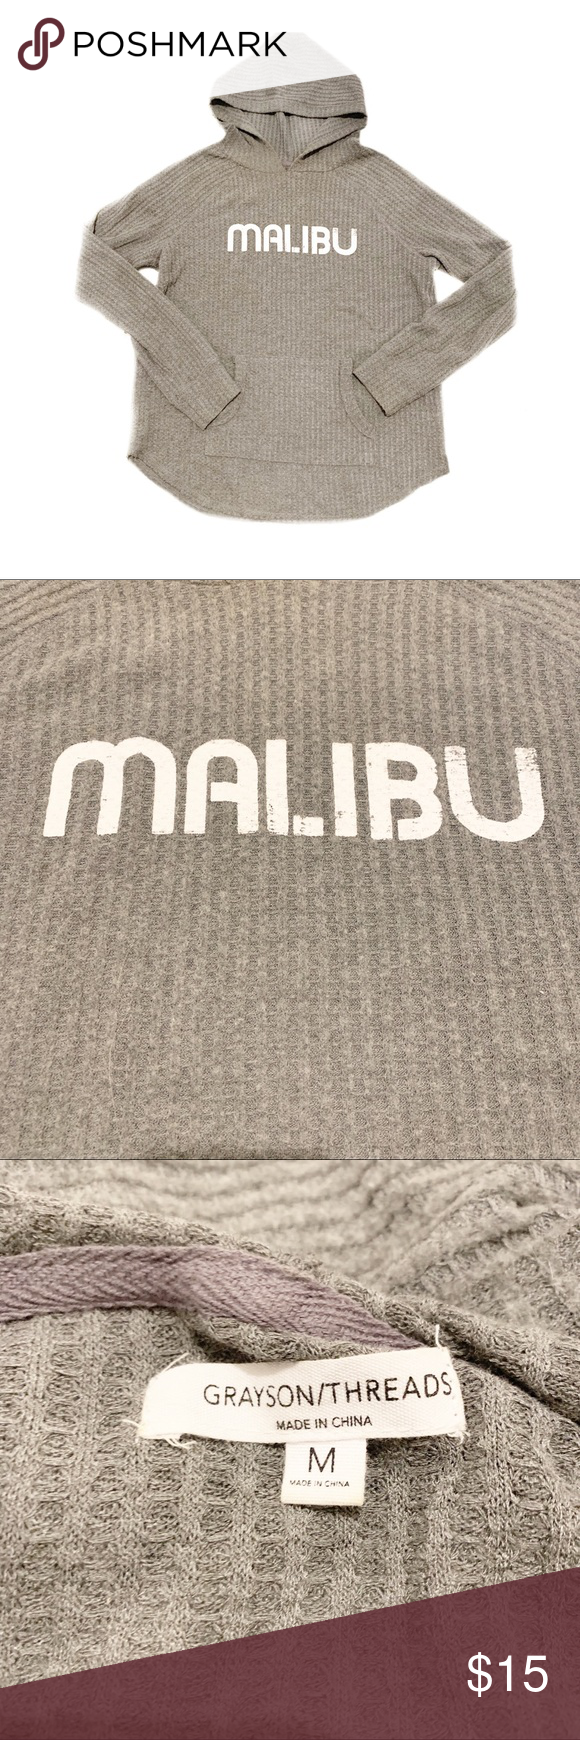 Malibu Hooded Thermal Gray Malibu thermal hoodie. Worn once. Excellent condition!  Supper comfortable and flattering cut   Boho beach pool party music festival gypsy concert sexy girly flirty fun photo model night out resort spring break honeymoon cover up poolside resort lounging spell bohemian hippy gray hoody hoodie revolve activewear athlesiure Tops #beachhoneymoonclothes